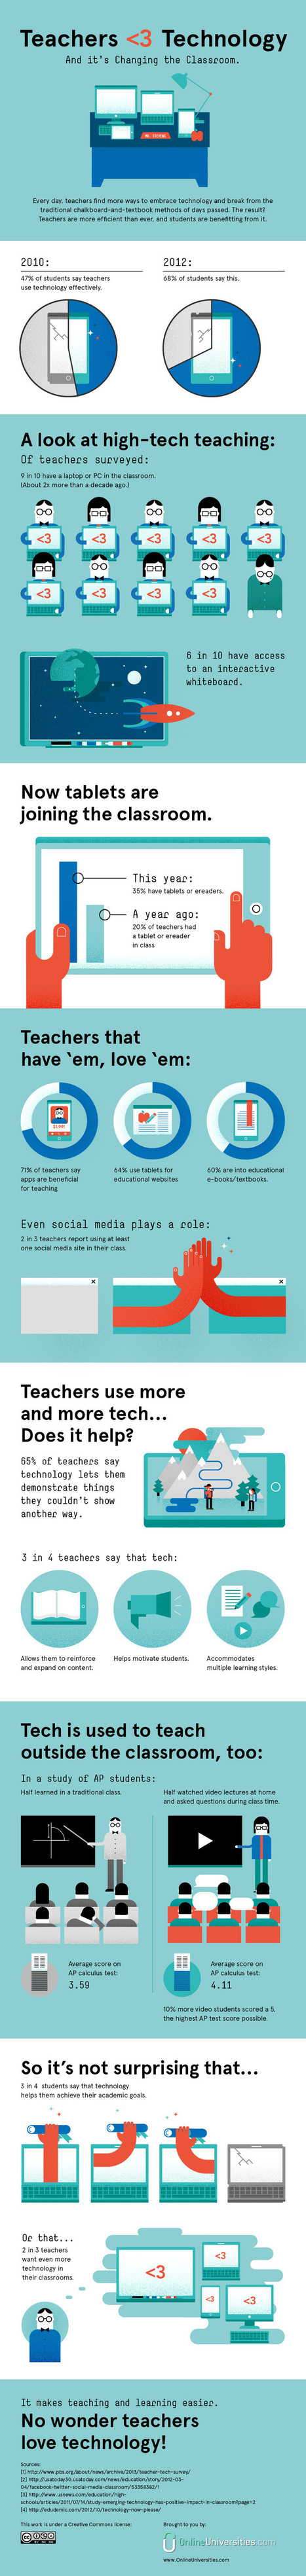 Teachers Love Technology - Online Universities.com | Perfil TIC del docente | Scoop.it